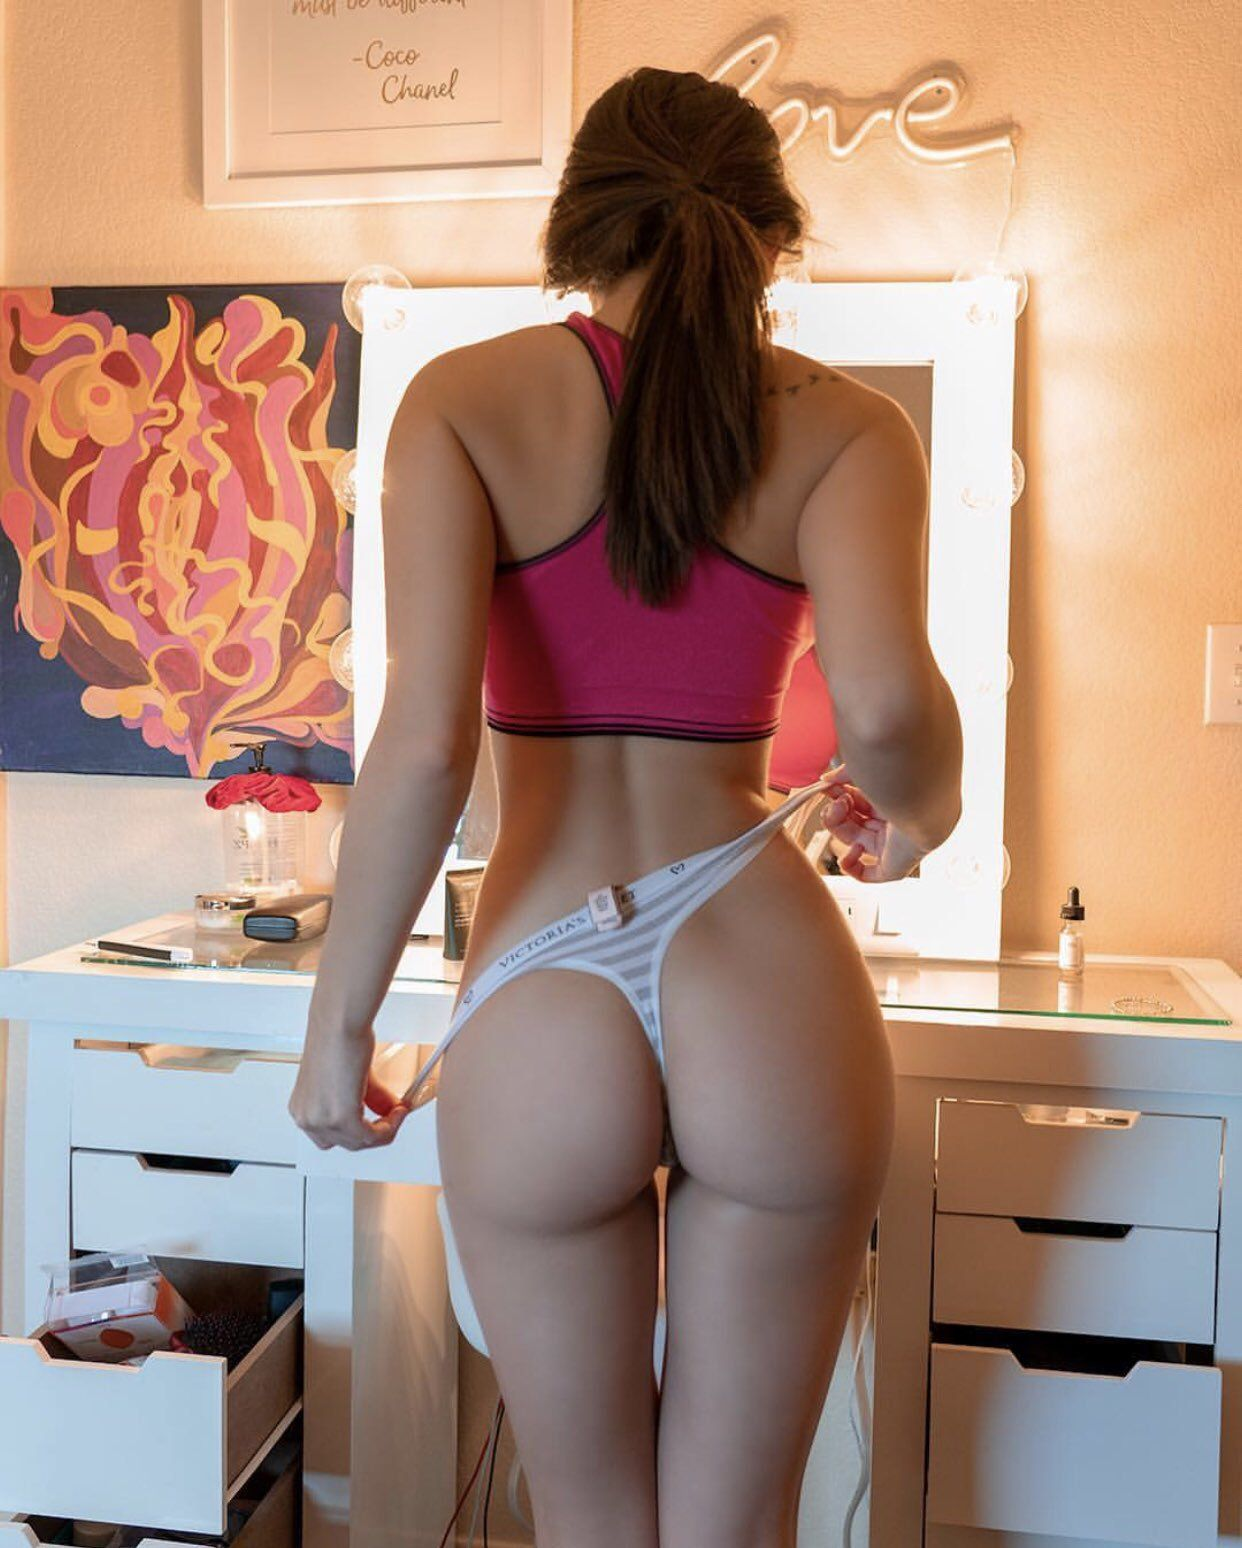 Violet Summers Nude Leaked Photos 0062